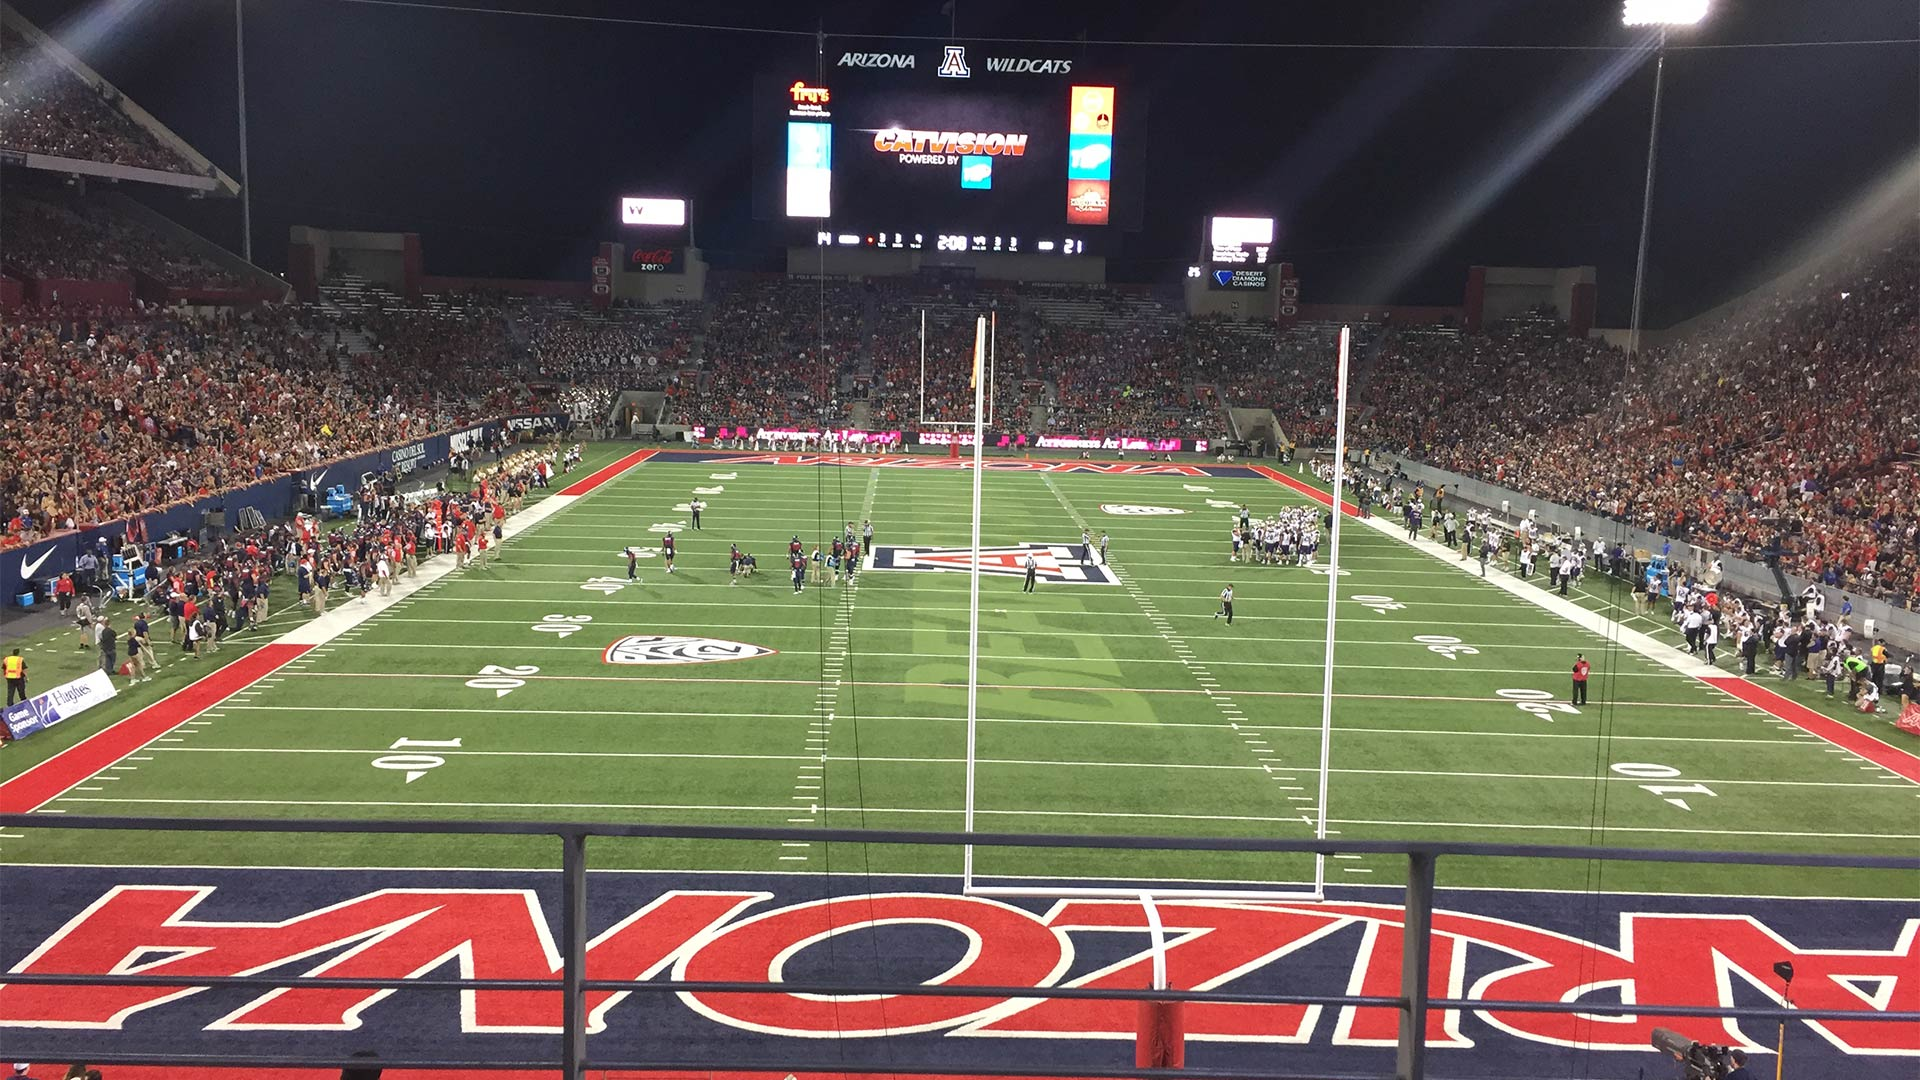 Arizona Stadium could open to 50% capacity for men's football in 2020.